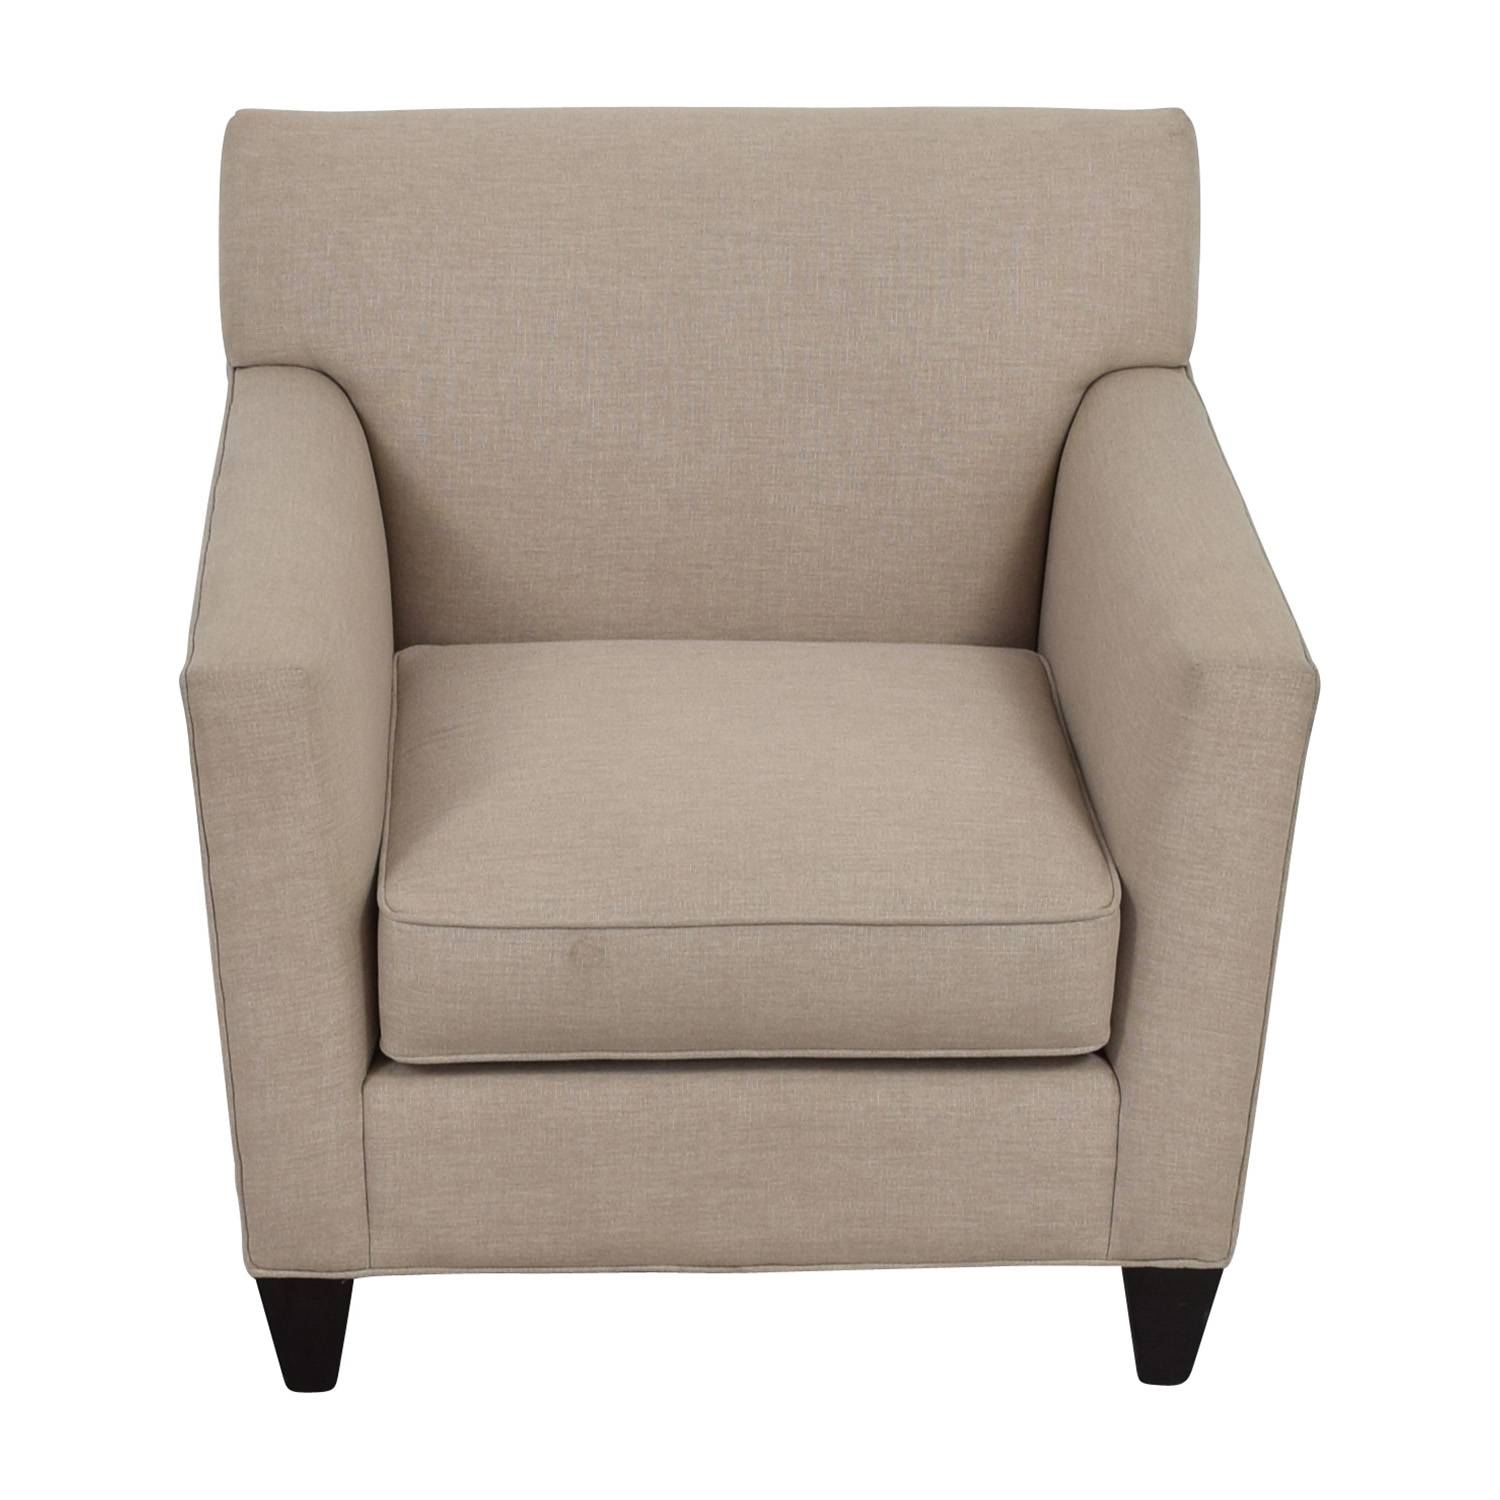 Accent Chairs: Used Accent Chairs For Sale within Accent Sofa Chairs (Image 2 of 30)